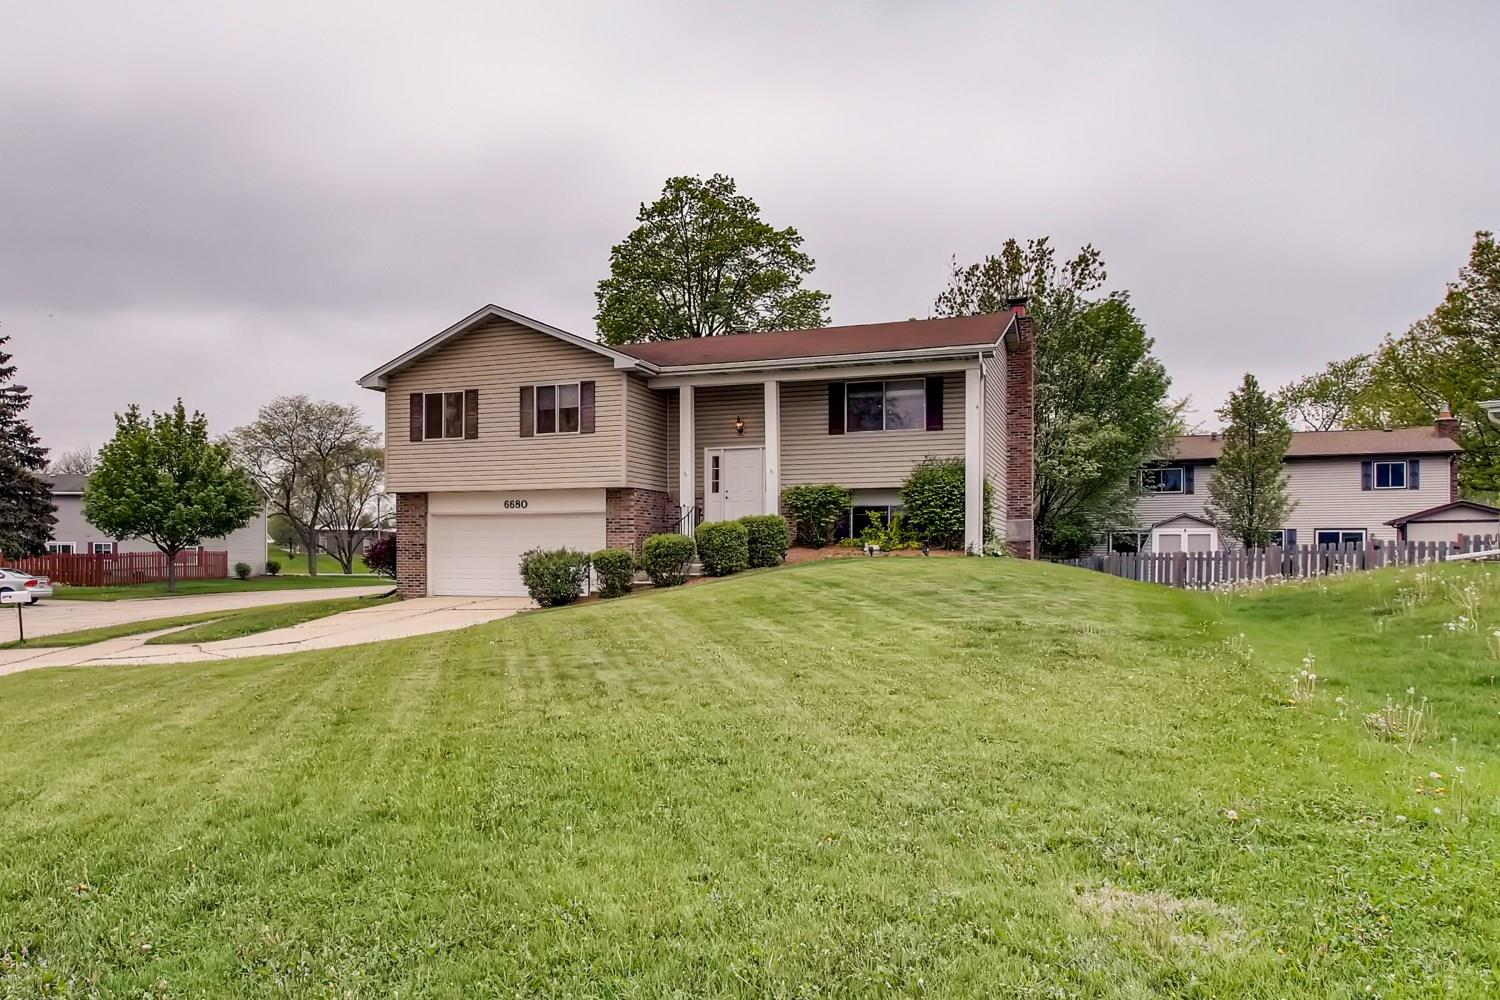 6680 Wheatfield Street, Woodridge, IL 60517 - #: 11077300